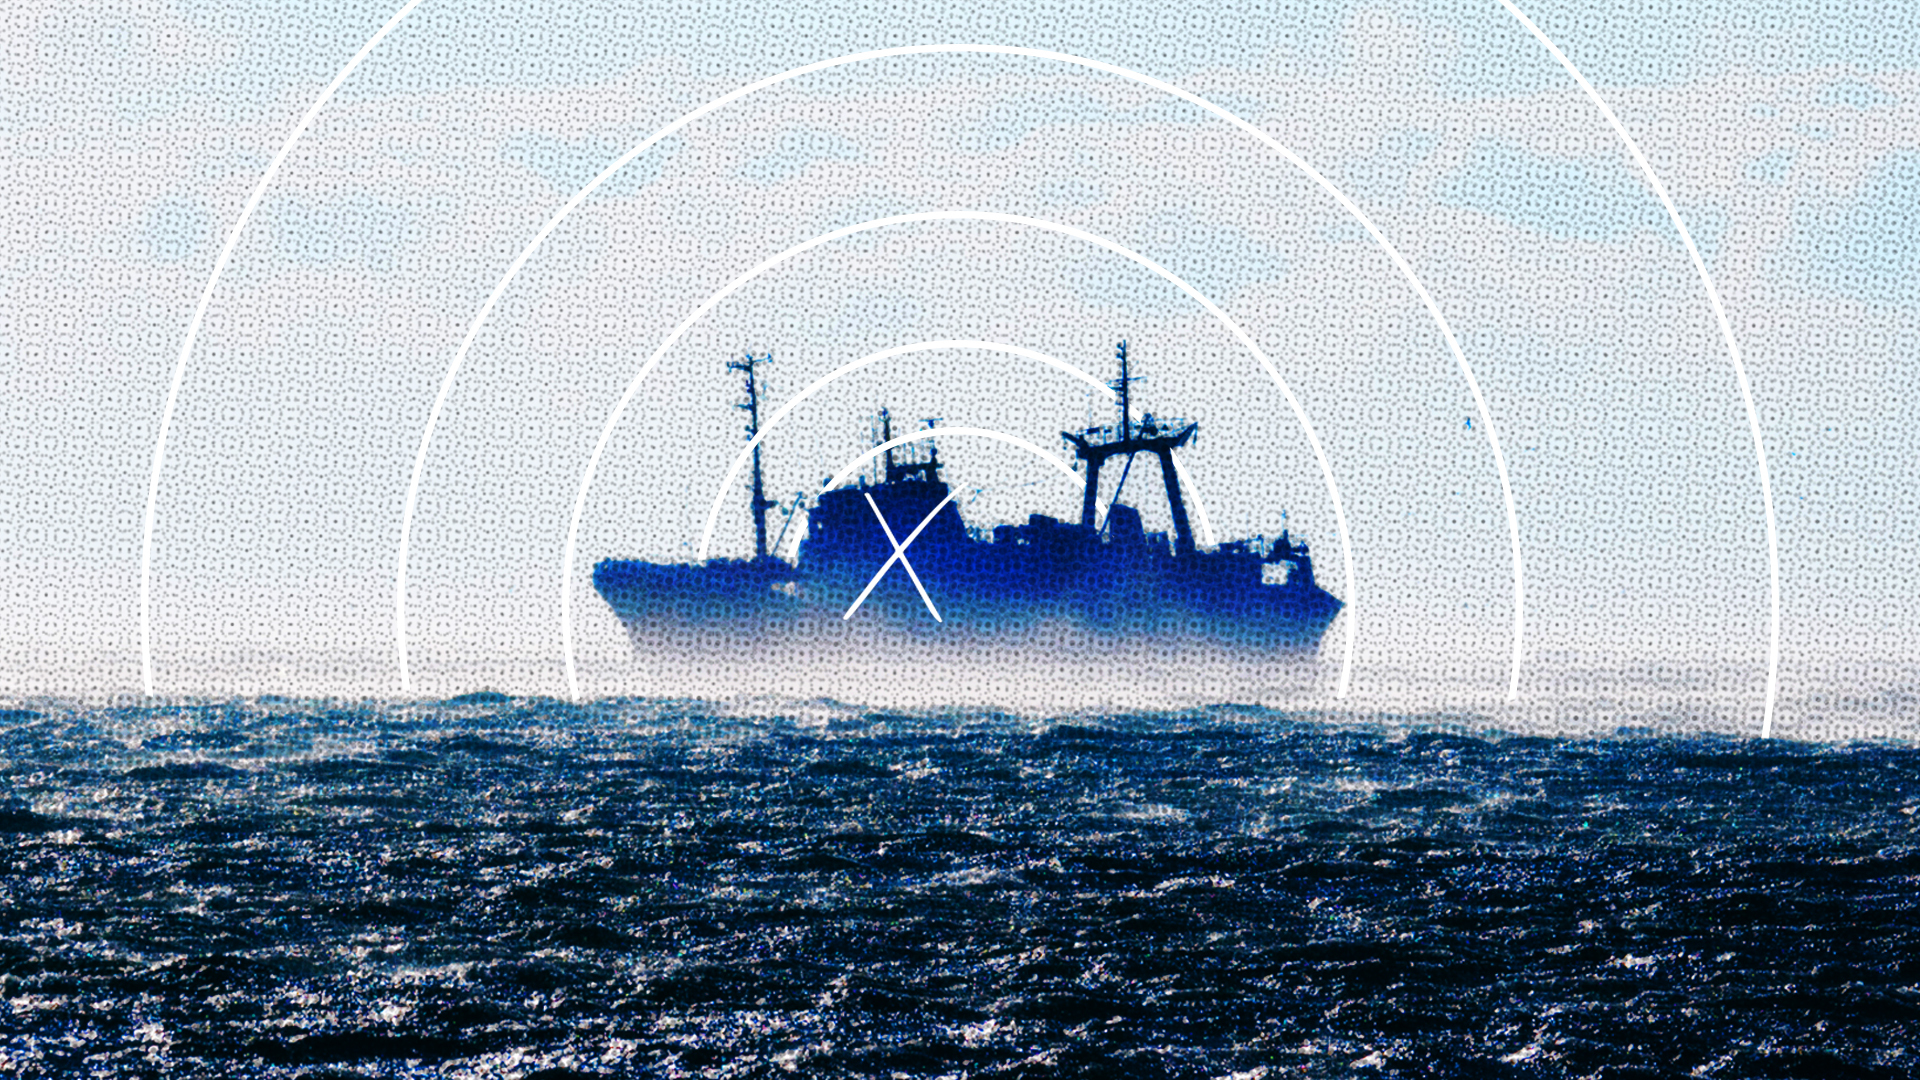 Tracking down mystery boats on the high seas